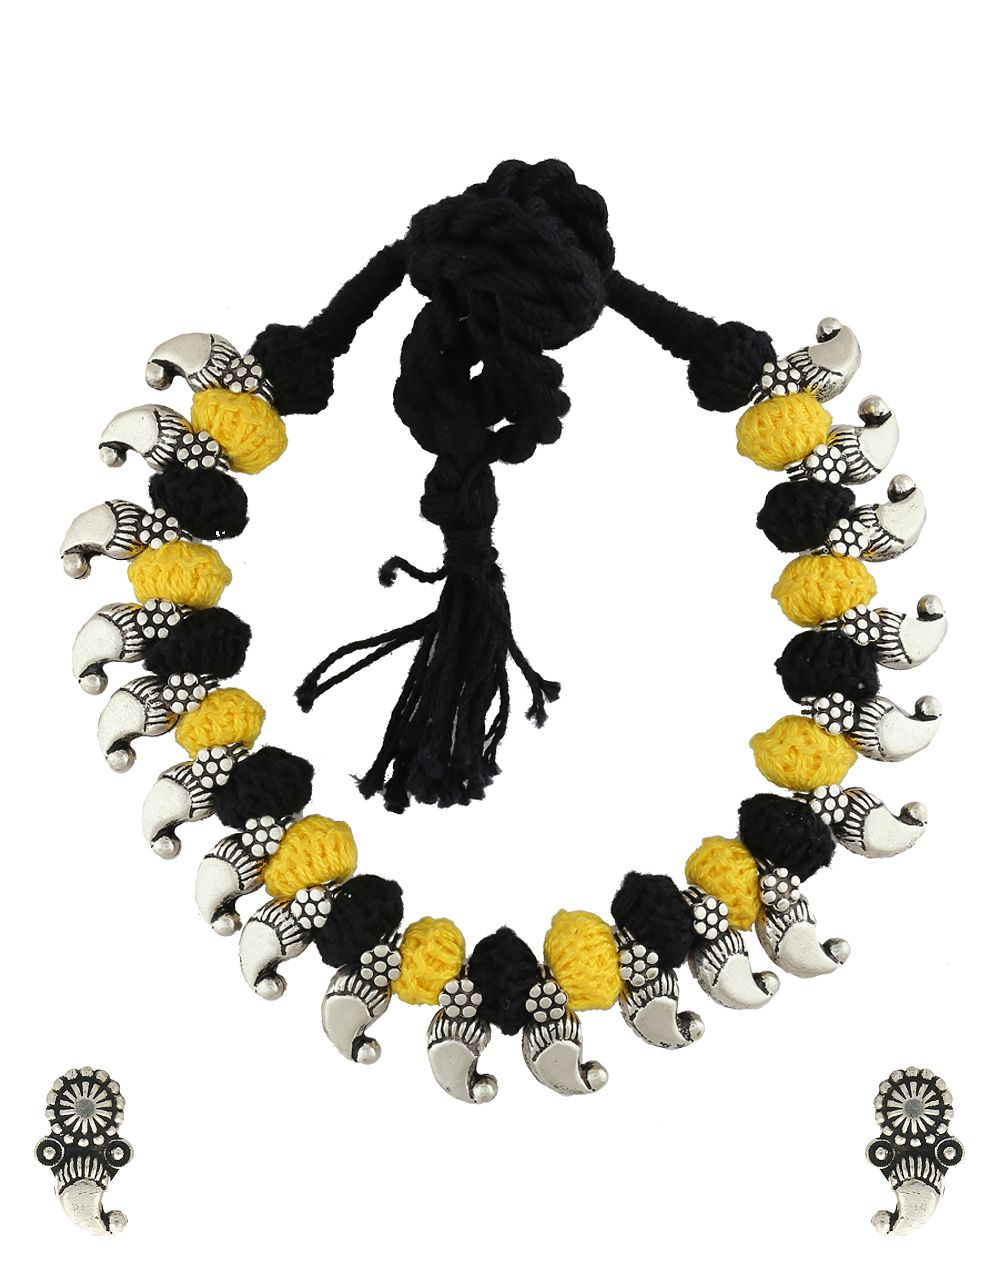 Anuradha Art Silver Tone Oxidized Designer Yellow-Black Colour Thred Necklace Set For Women/Girls